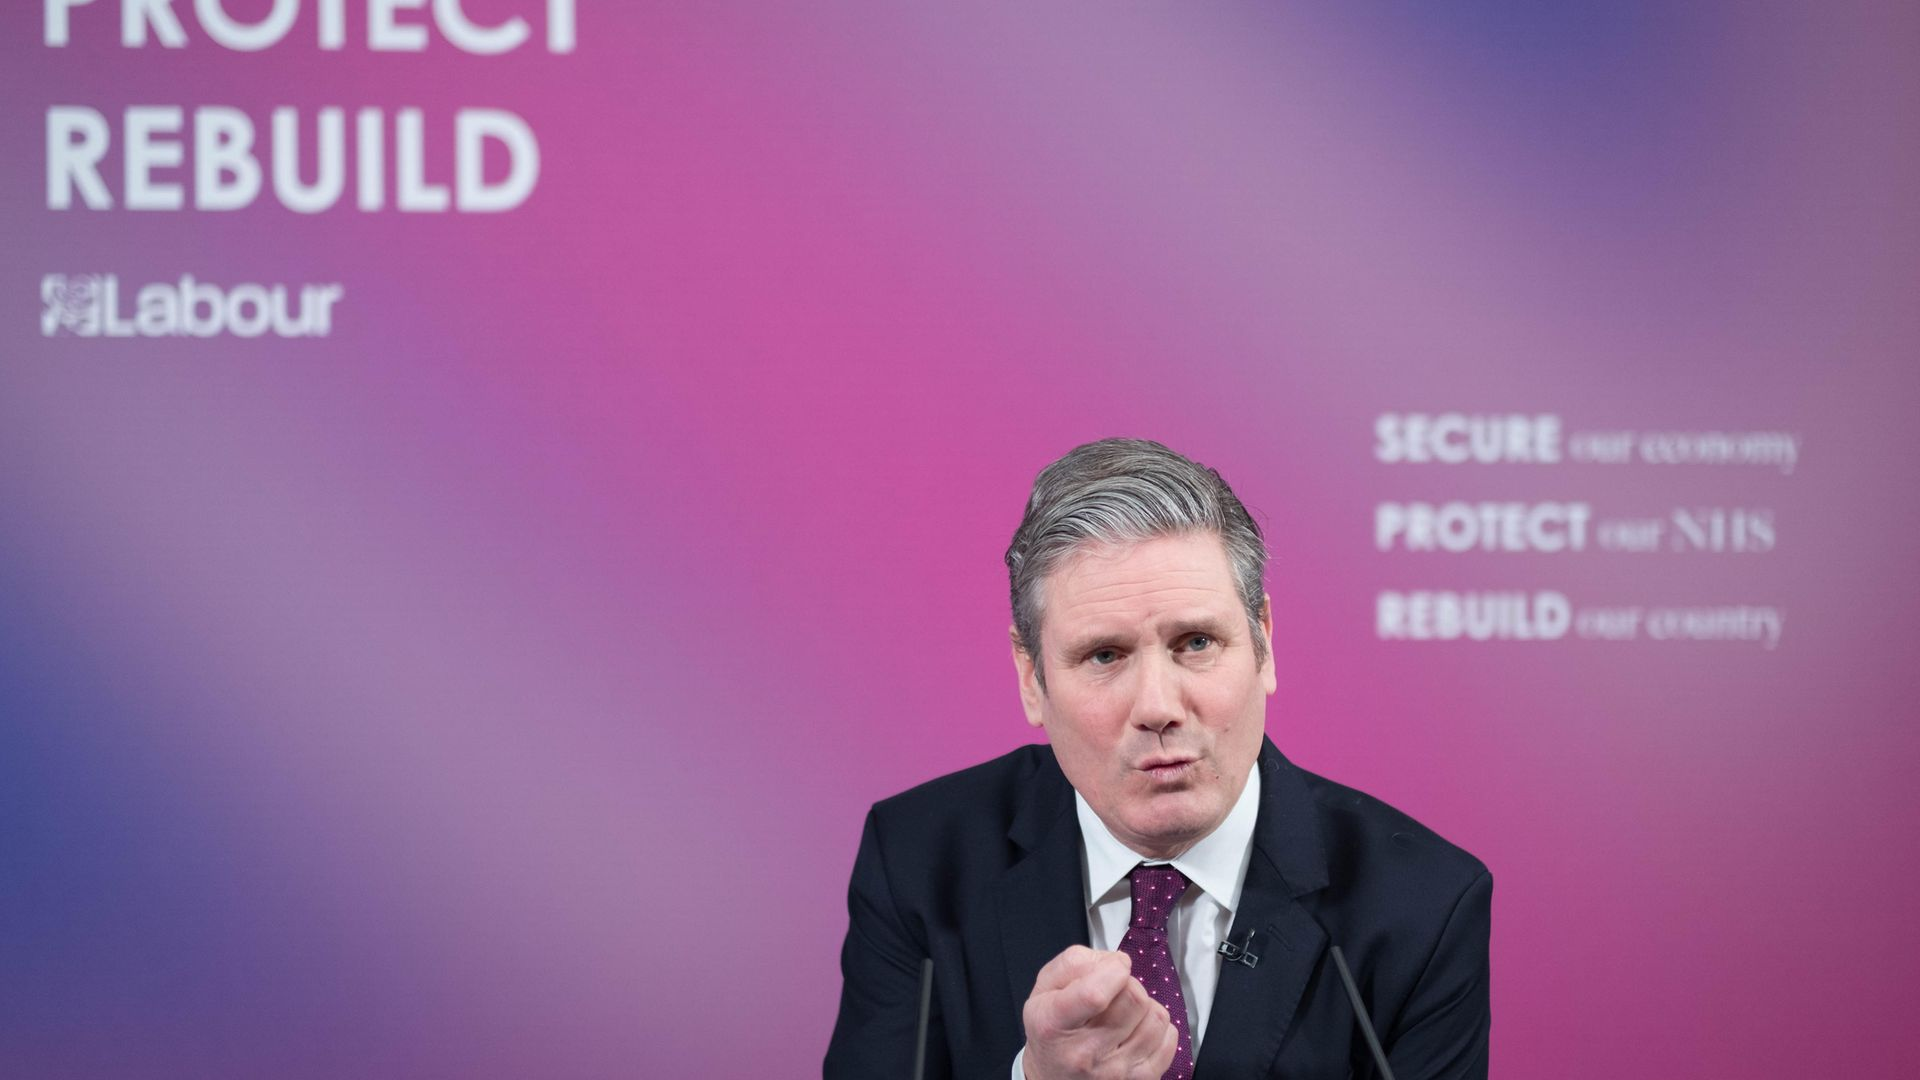 Labour leader Sir Keir Starmer delivers a virtual speech on Britain's economic future in the wake of the coronavirus pandemic, at Labour headquarters in central London - Credit: PA